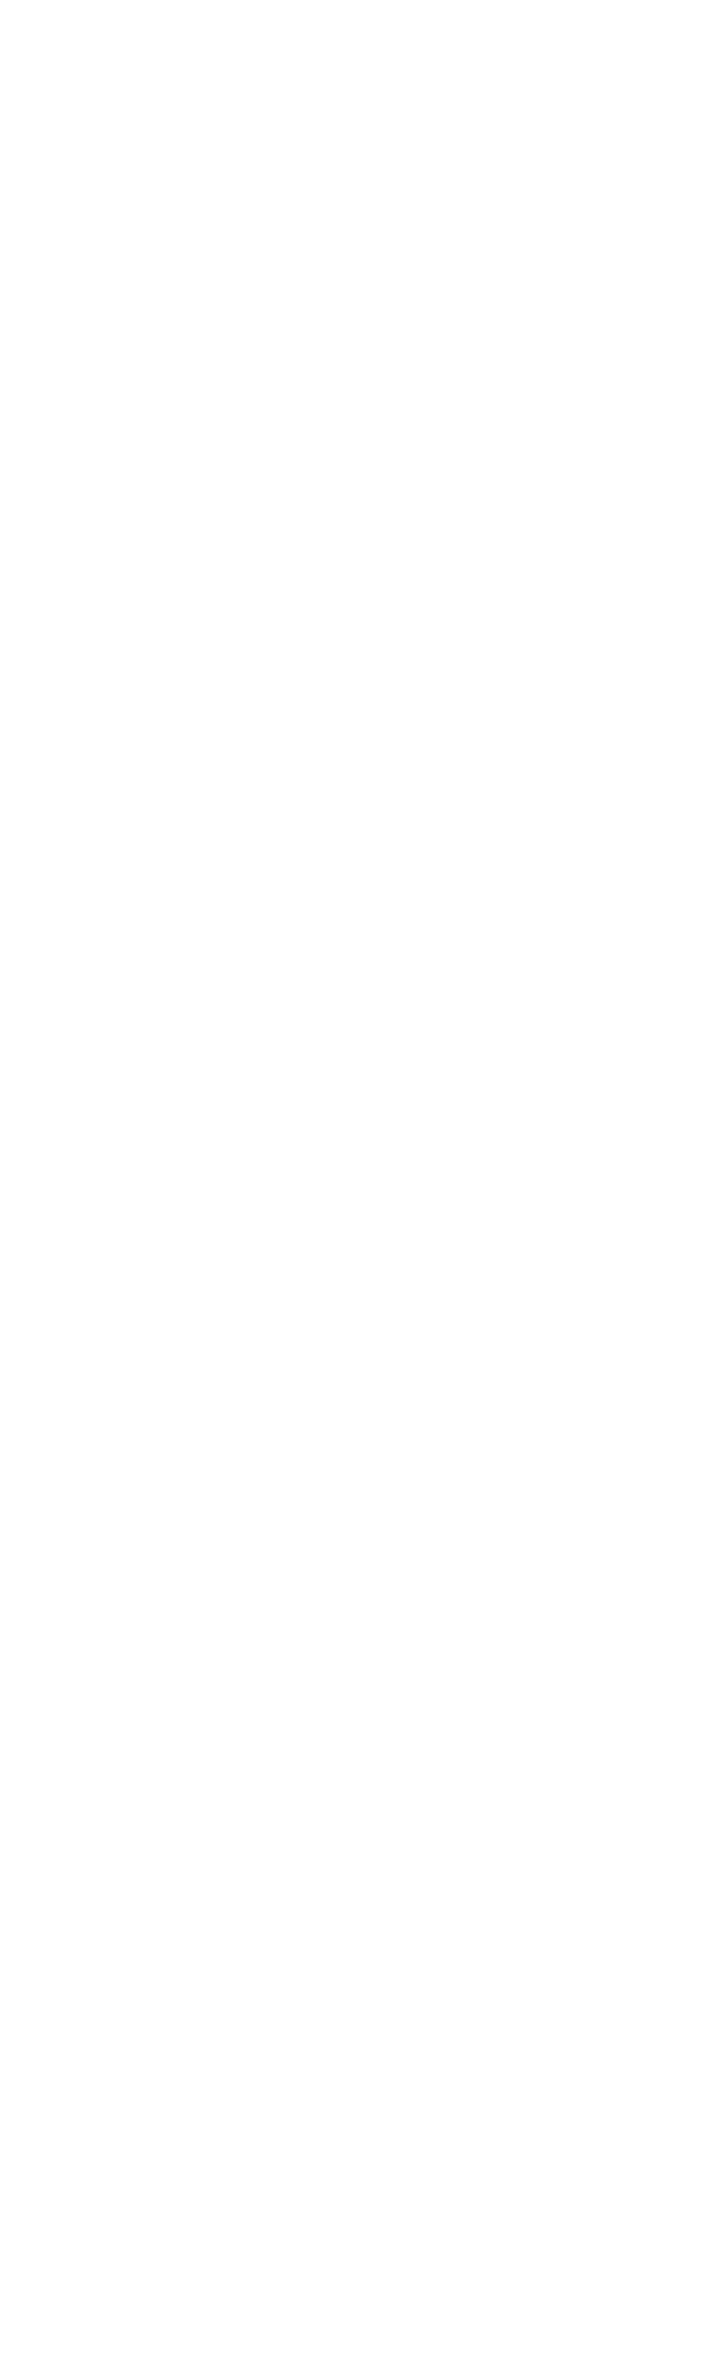 Christmas at Ashvale ….  Christmas lunch will be served daily between 12 noon and 3.30pm Monday to Friday commencing 3rd December - 19th December 2018. During the run-up to the Christmas season, in addition to our normal opening times, we will be serving our evening menu on the following Thursday evenings.  22nd November 29th November 6th December  (fully booked private function) 13th December 20th December Booking is not required for remaining dates.   10% Discount in our Gift Shop on these dates.  Christmas Fayre menu is available on request for private parties (minimum 40 persons) Please contact member of staff for availability and prices.    We are now taking orders up until Wednesday 19th December for the following ;  Desserts, ask for details and price from our staff. Mince Pies, Christmas Cakes, Christmas Puddings etc, ask staff for details and prices. Farm Fresh Turkeys (oven ready) ask staff for details and prices. Hams - Cooked and dressed or uncooked, ask staff for details and prices. Christmas Hampers - fruit individually sourced, ask staff for details and prices.  Collection of the above items no later than 12 noon Christmas Eve Monday 24th December 2018.   Santa is coming to Ashvale! - Saturday 15th December 2018  Christmas Carols and songs with Santa in his Sleigh. Spiced mulled wine and nibbles to keep warm Everyone is very welcome to join us in helping to raise funds for the Mayor's charity  Children with Cancer  Gift Vouchers Available  can be used anywhere  throughout shop including  afternoon teas and the Little Shop@Ashvale.